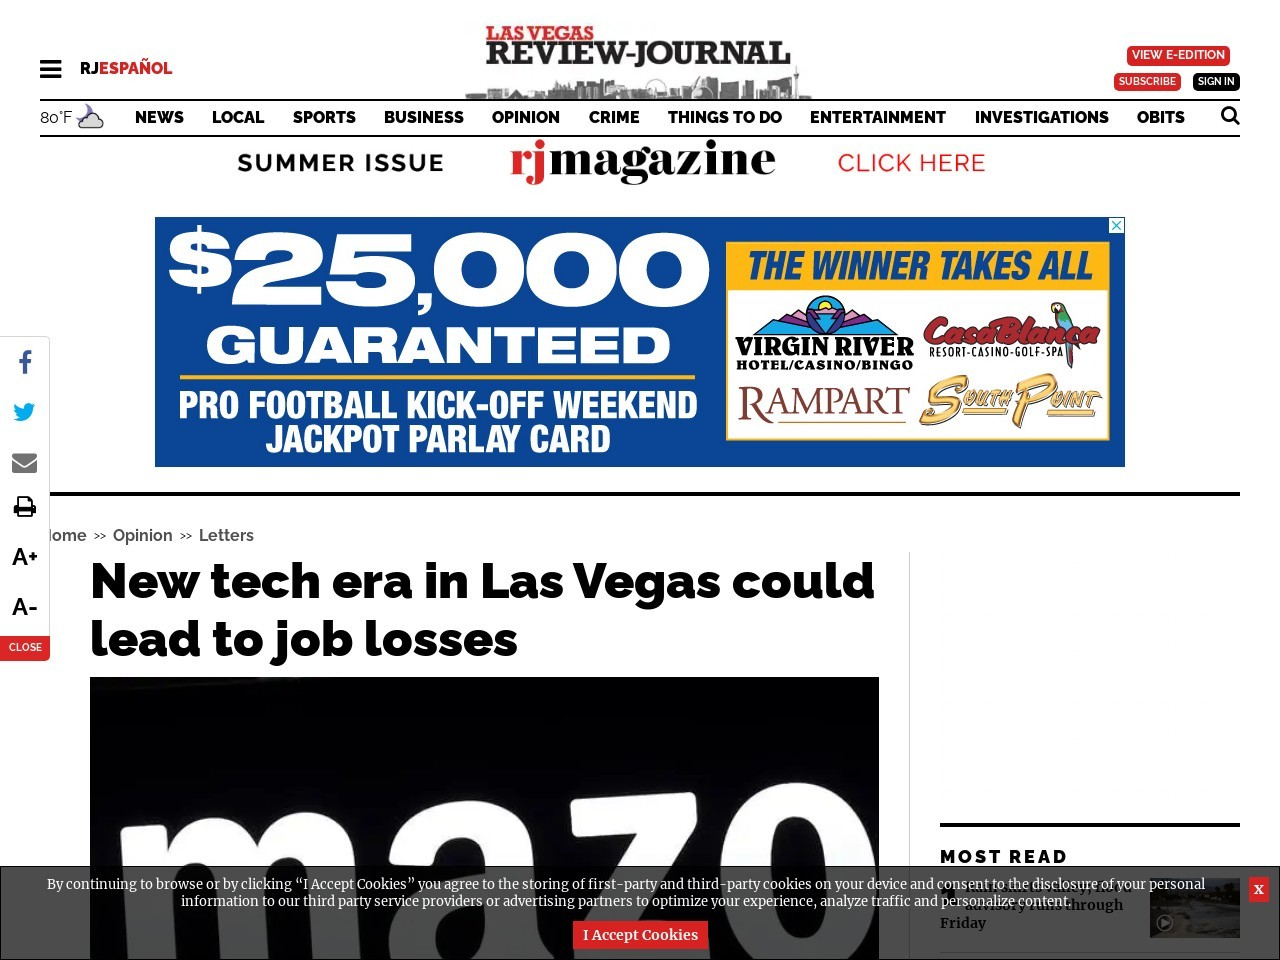 New tech era in Las Vegas could lead to job losses